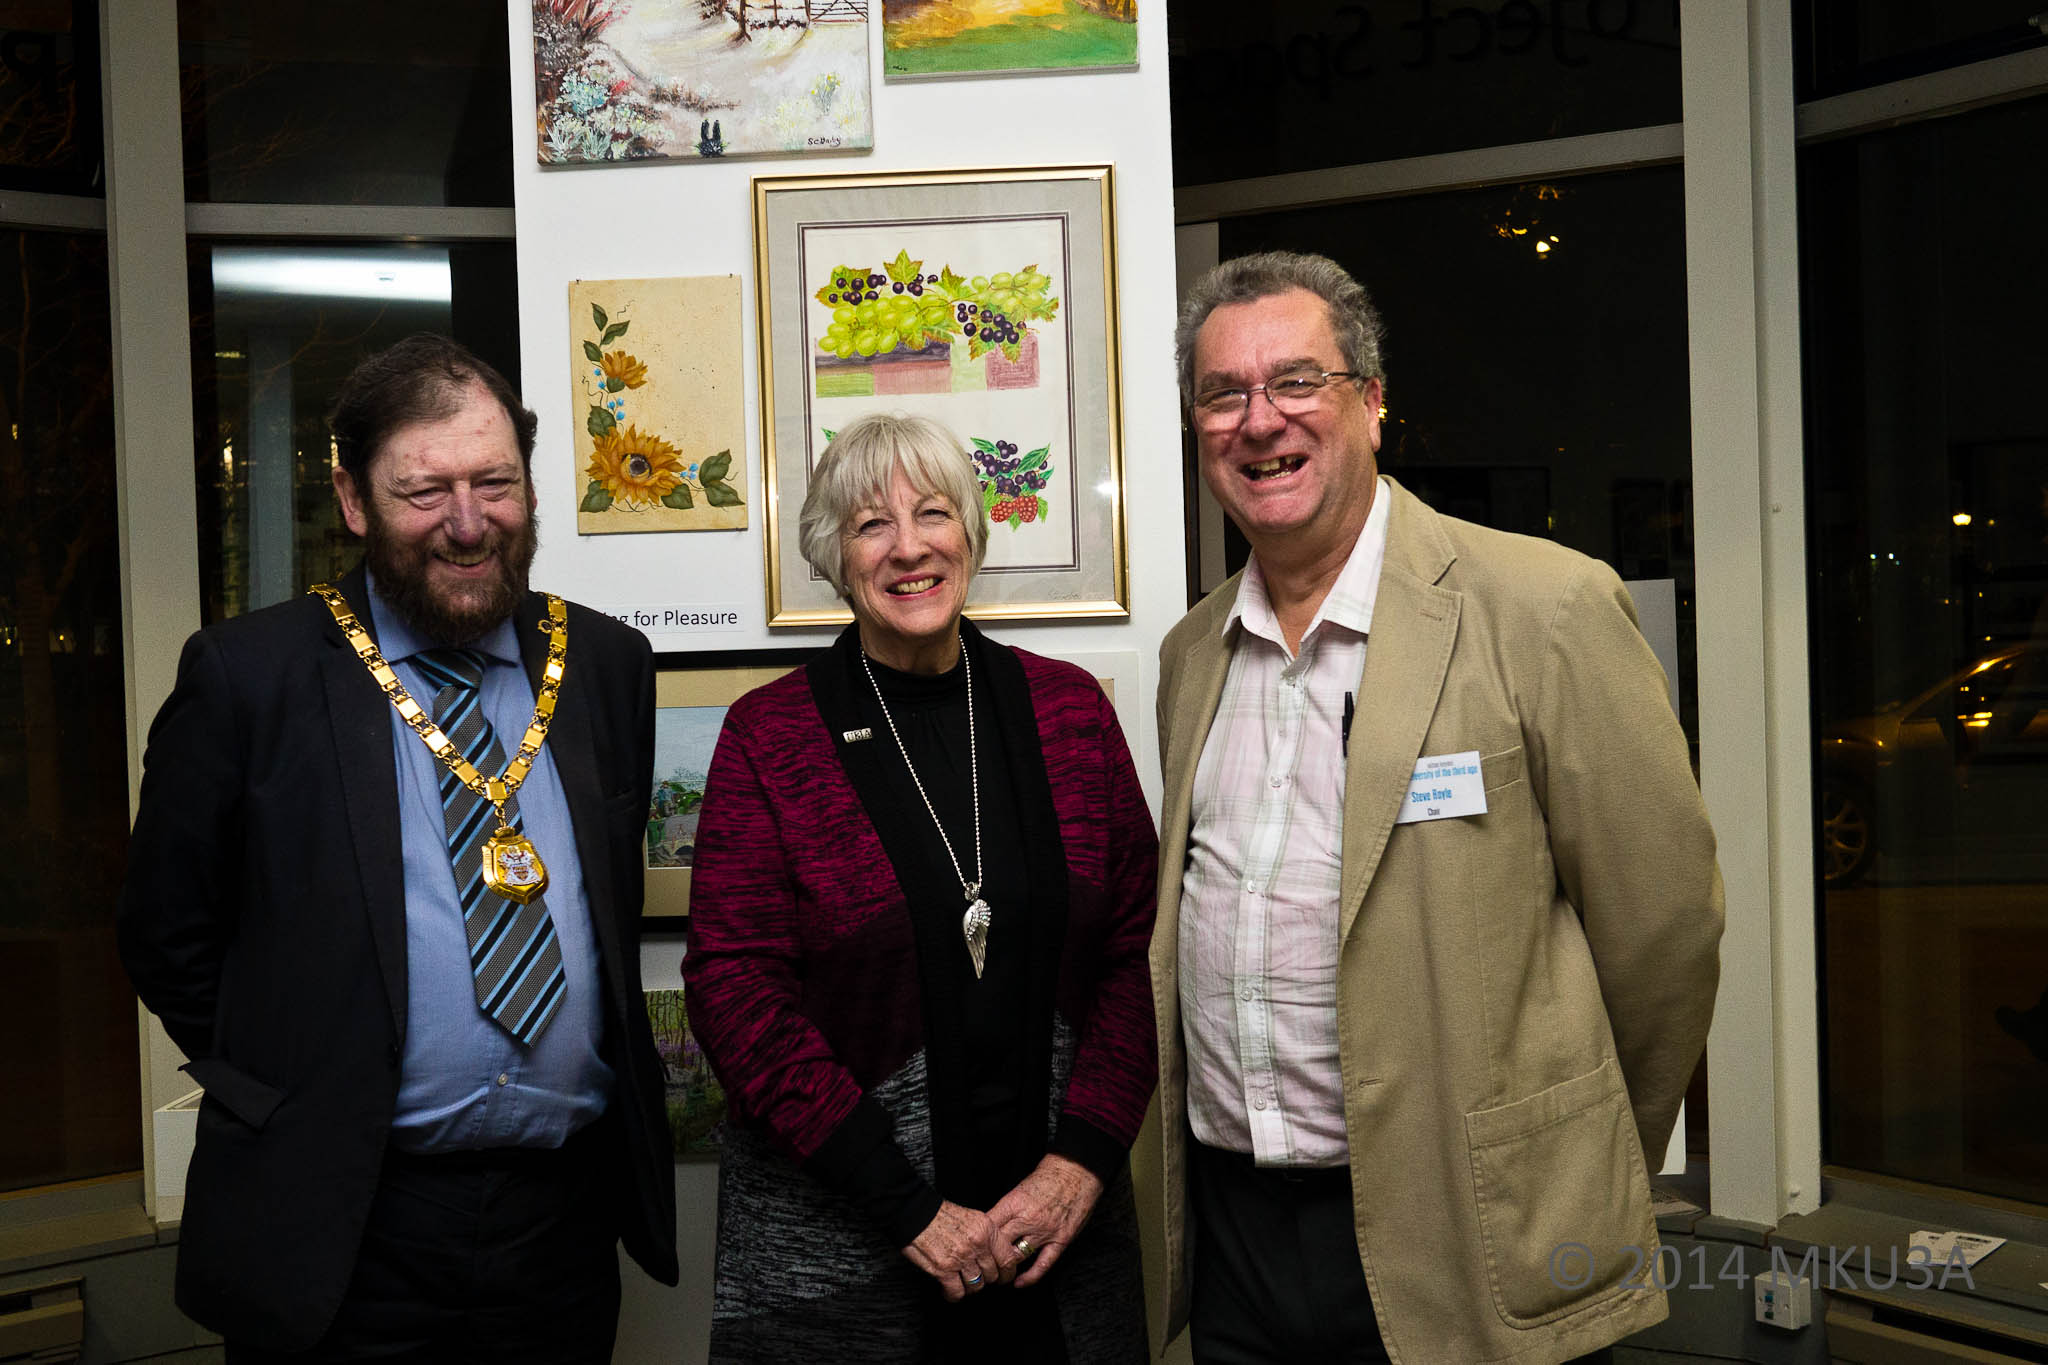 The Mayor of Milton Keynes, Councillor Brian White, the National Chairman of U3A, Barbara Lewis and Milton Keynes U3A Chair, Stephen Royle